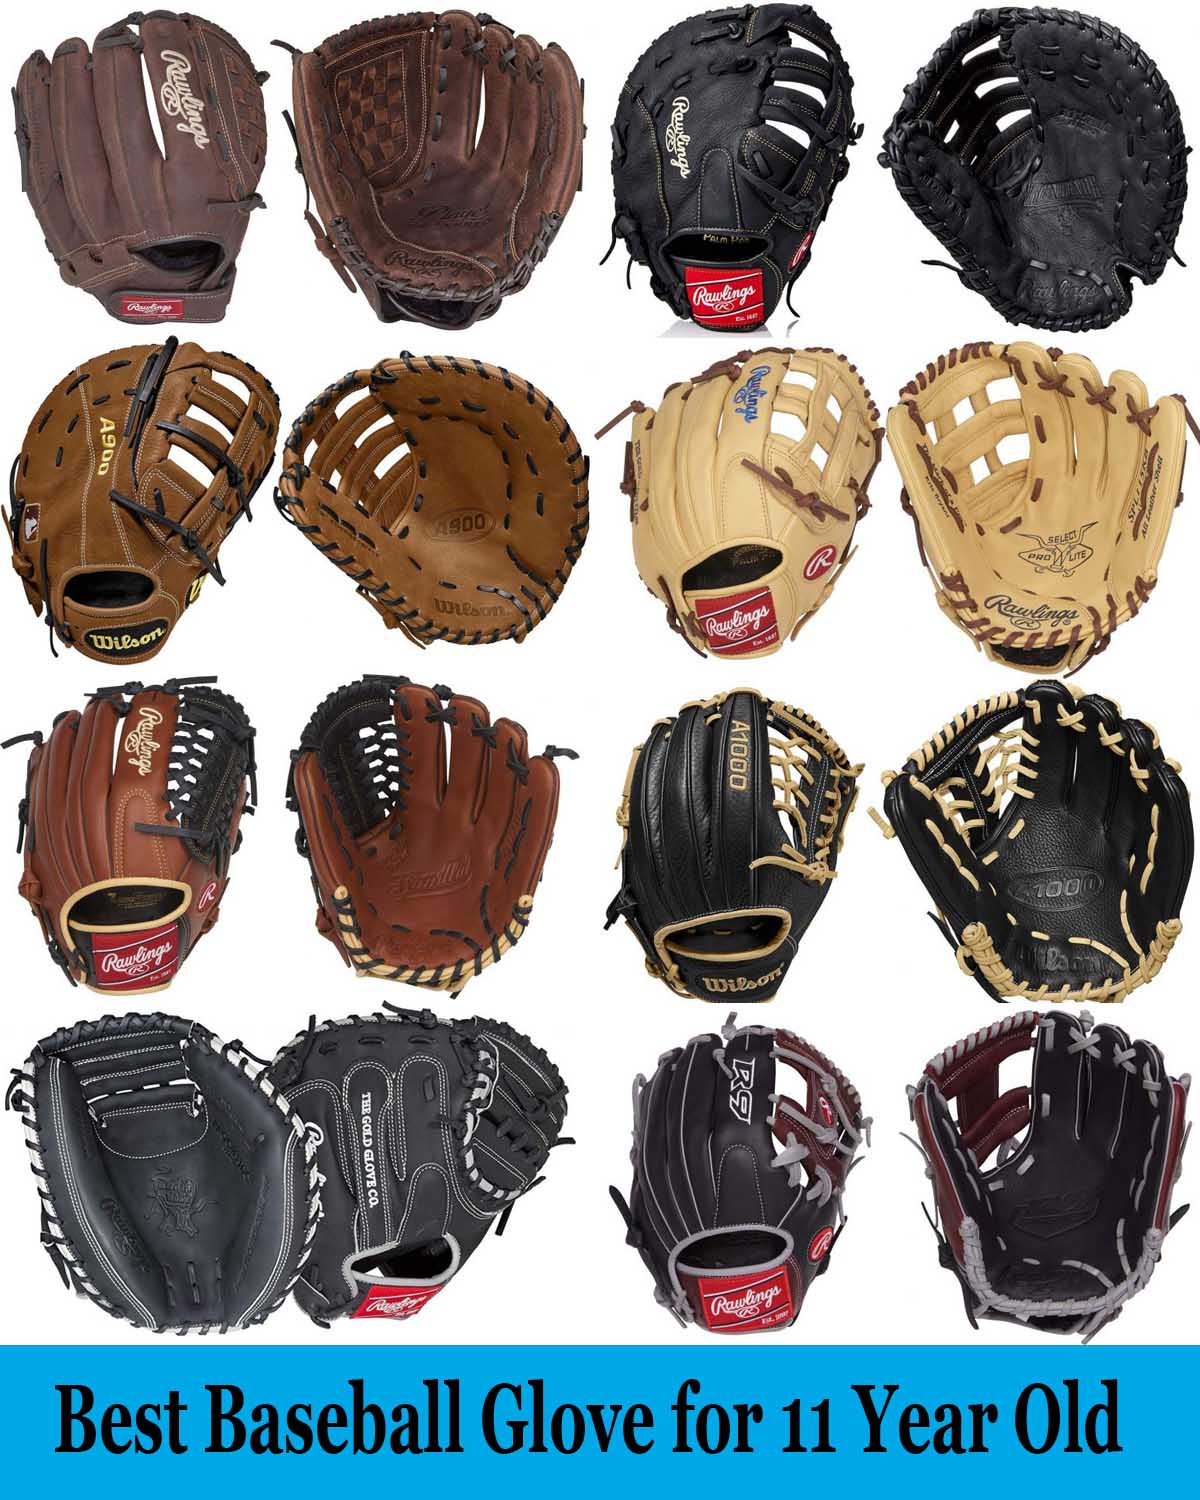 Best Baseball Glove for 11 Year Old